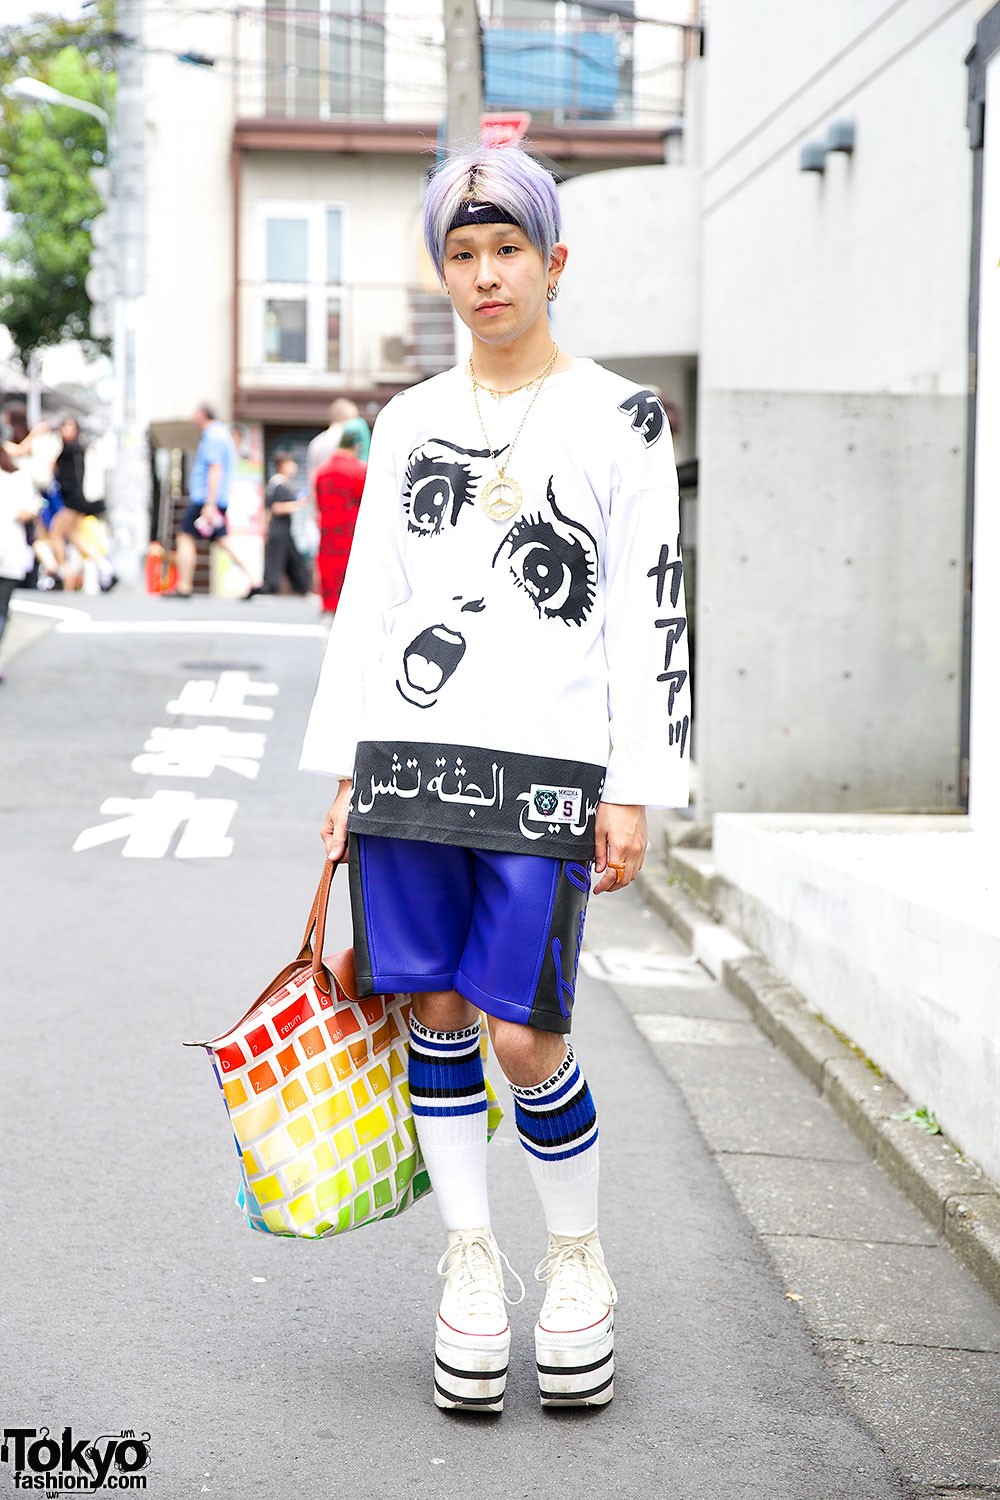 Converse High Top Sneakers & Bone Stockings – Tokyo Fashion News